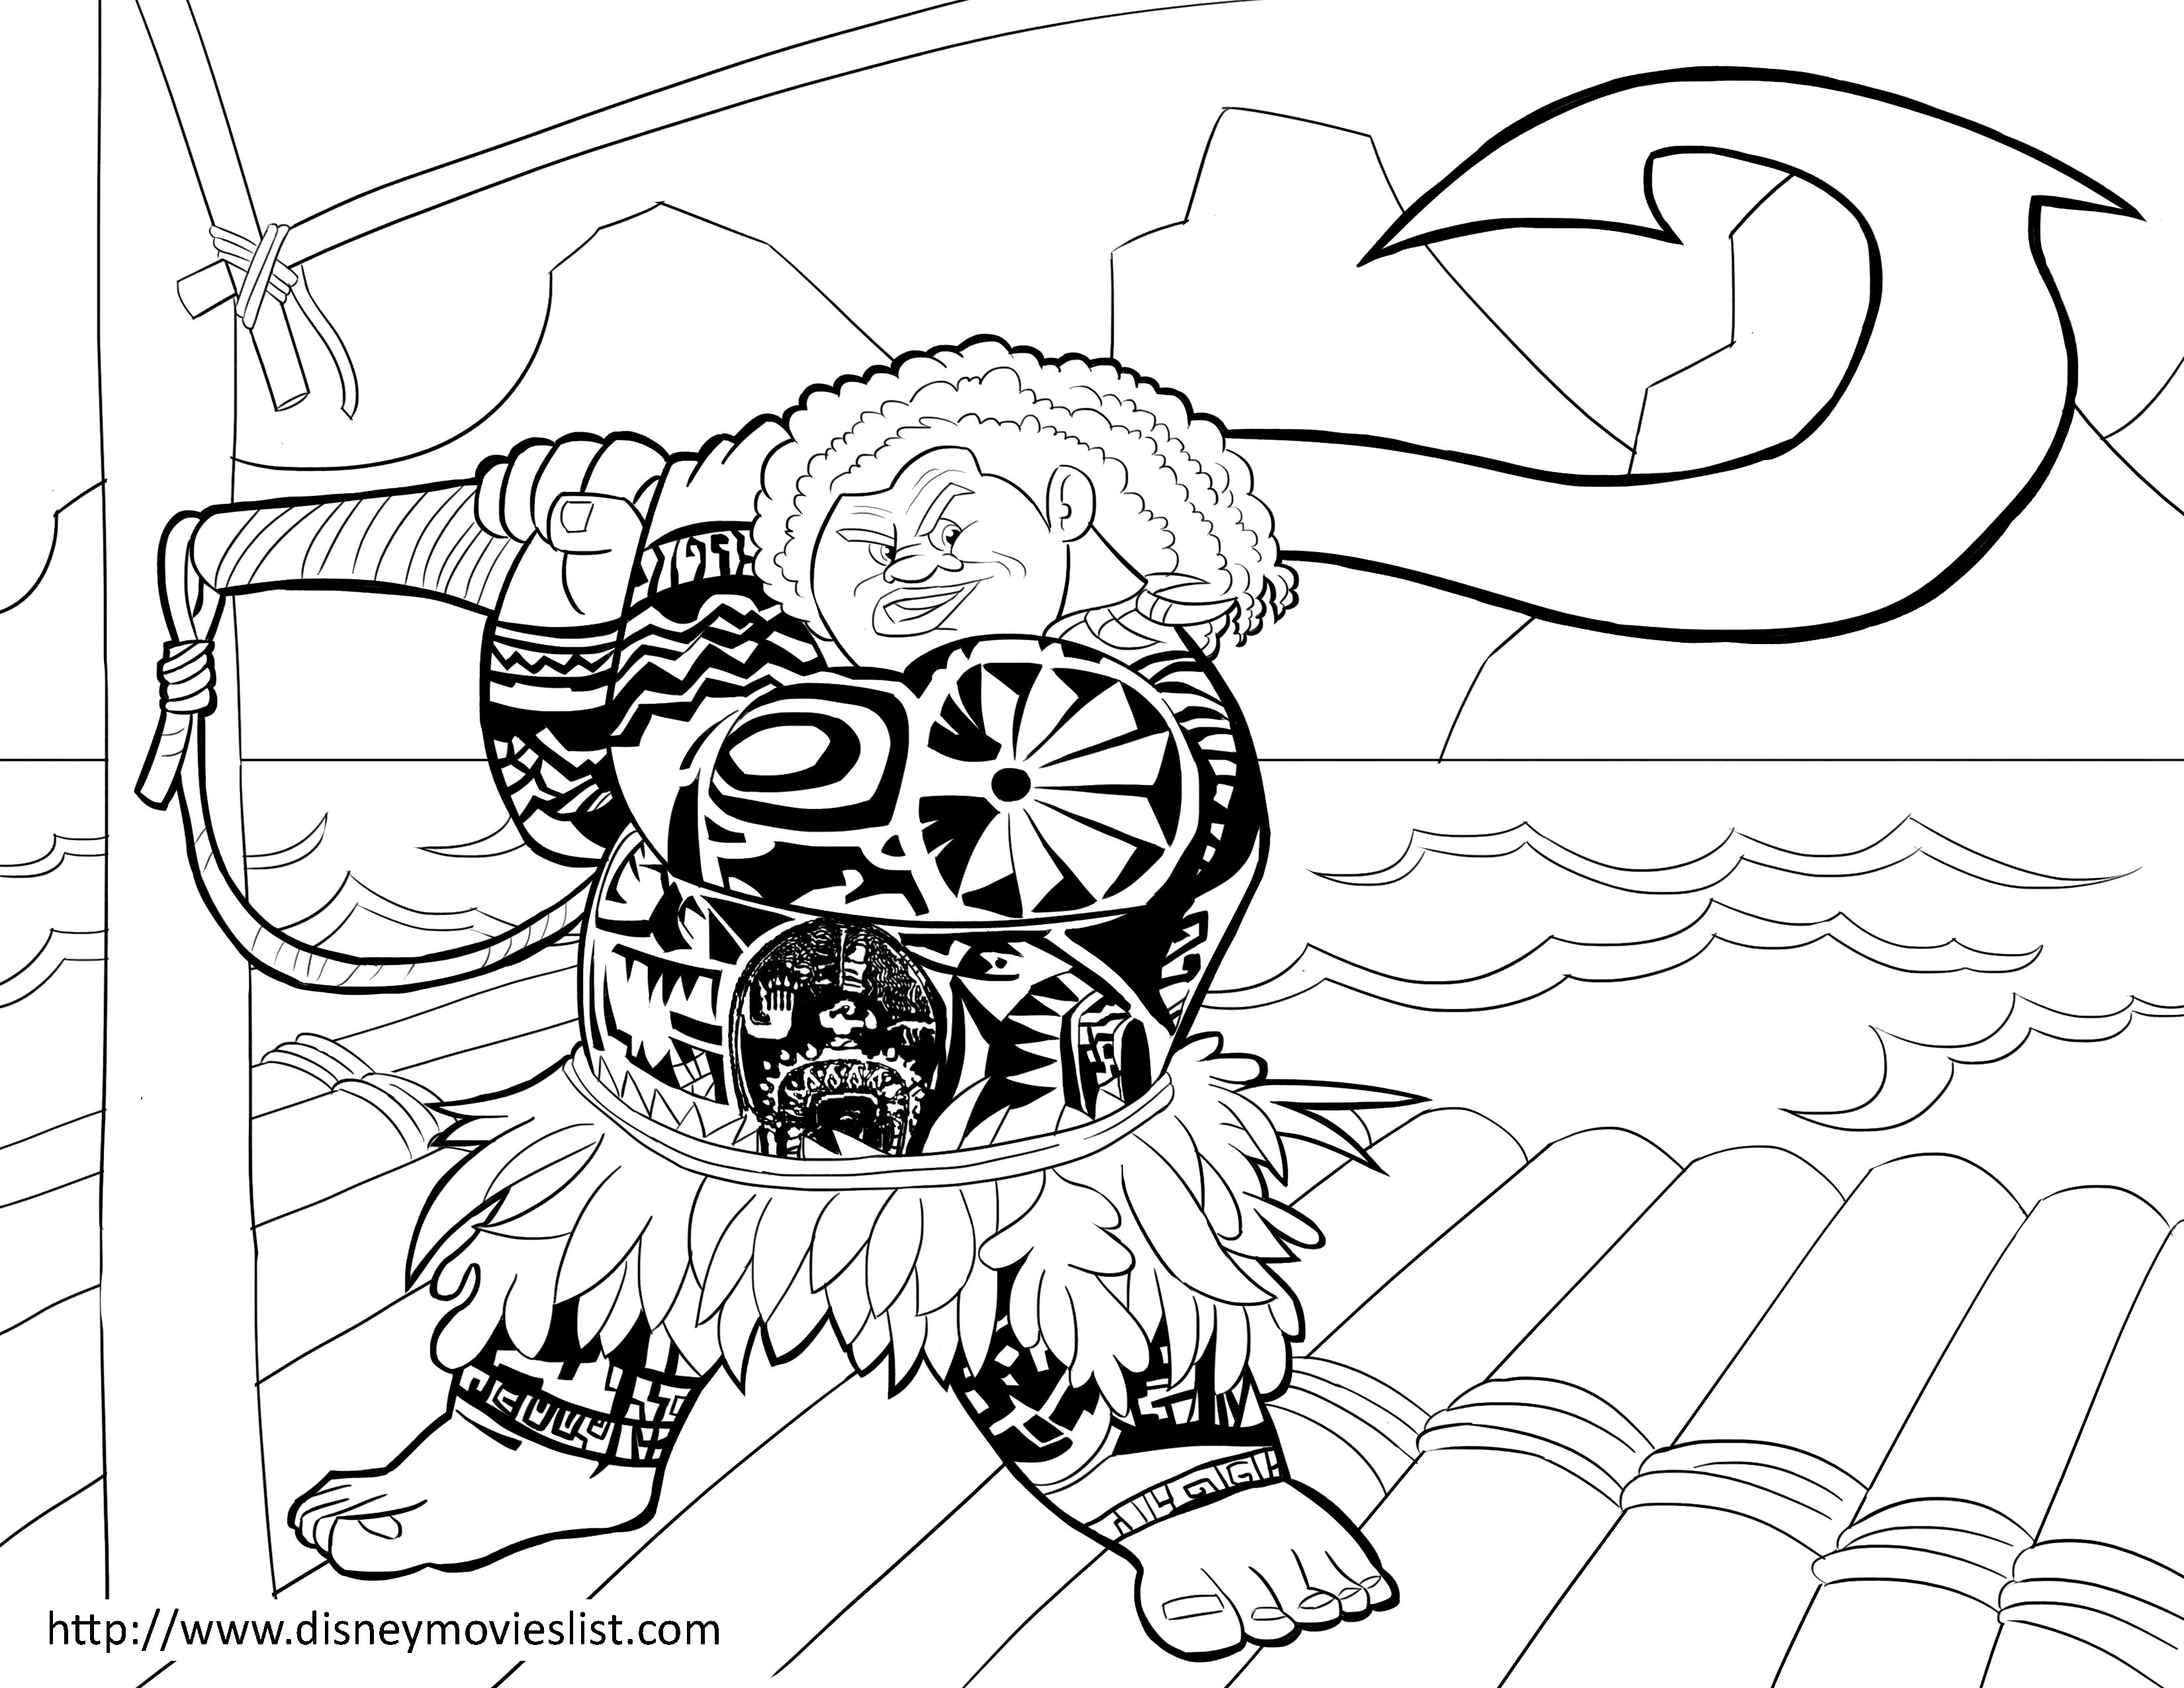 Disney's Moana Coloring Pages Sheet, Free Disney Printable